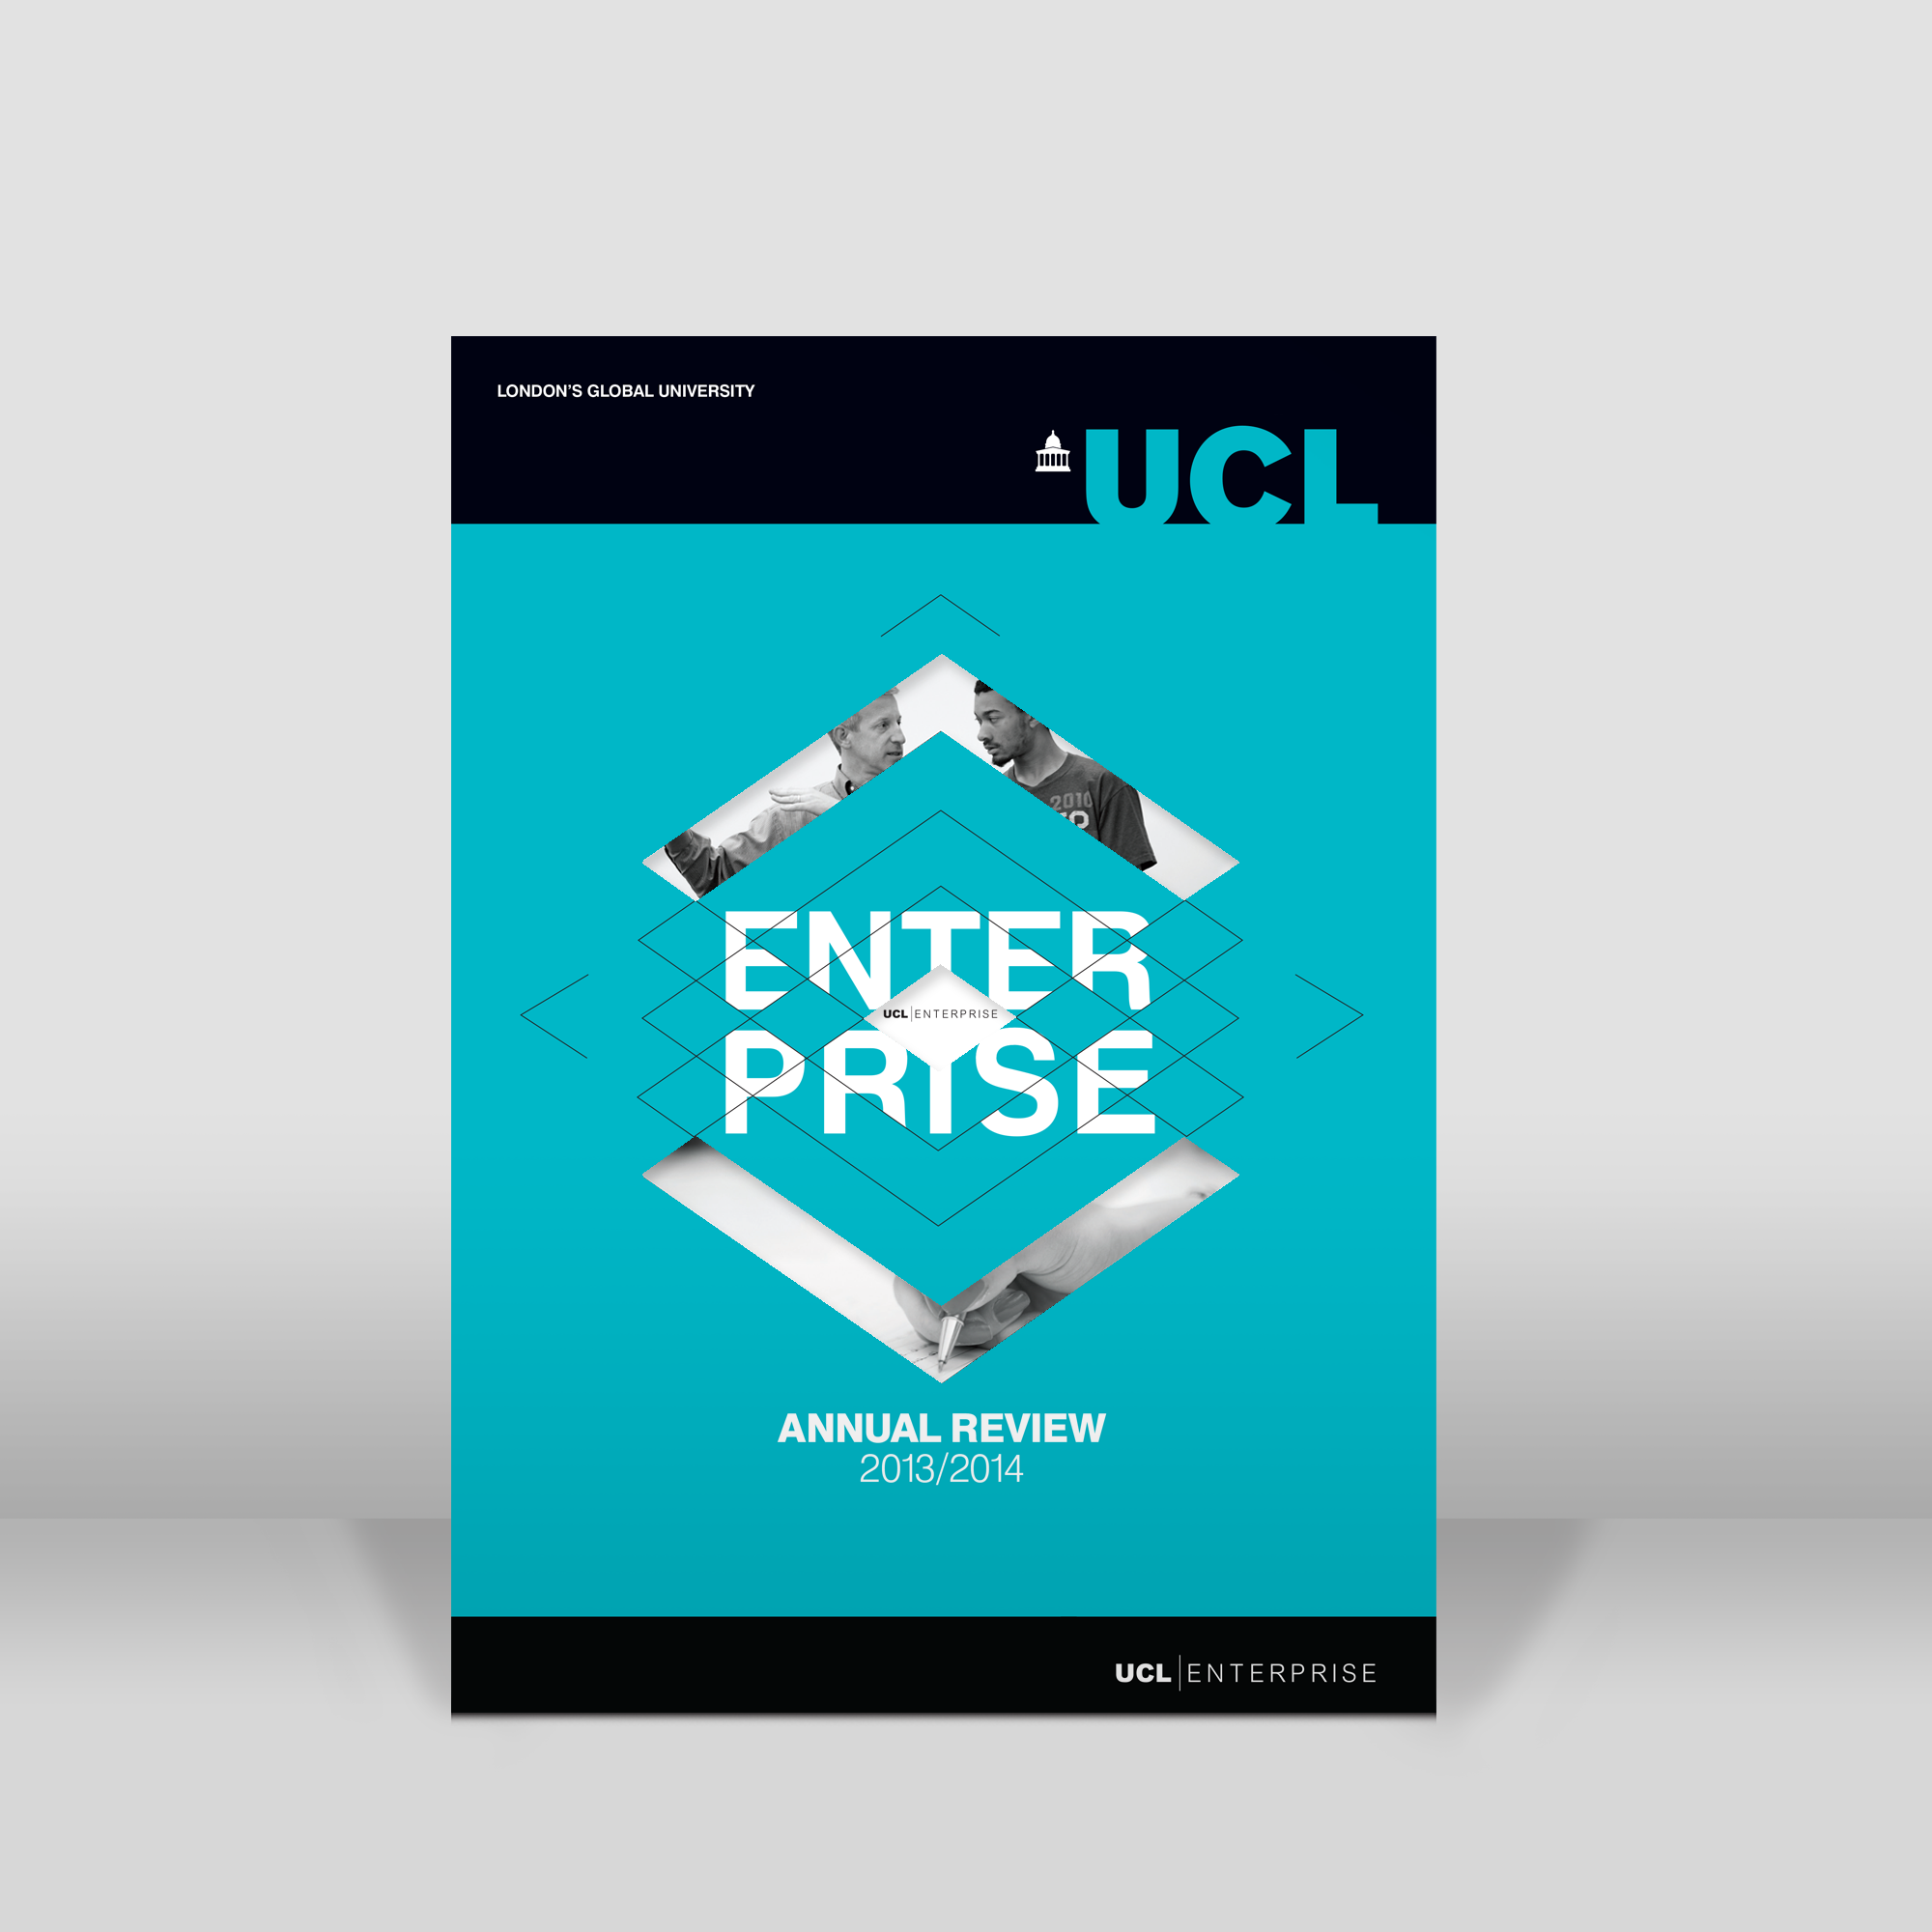 University college London annual report design front cover.png